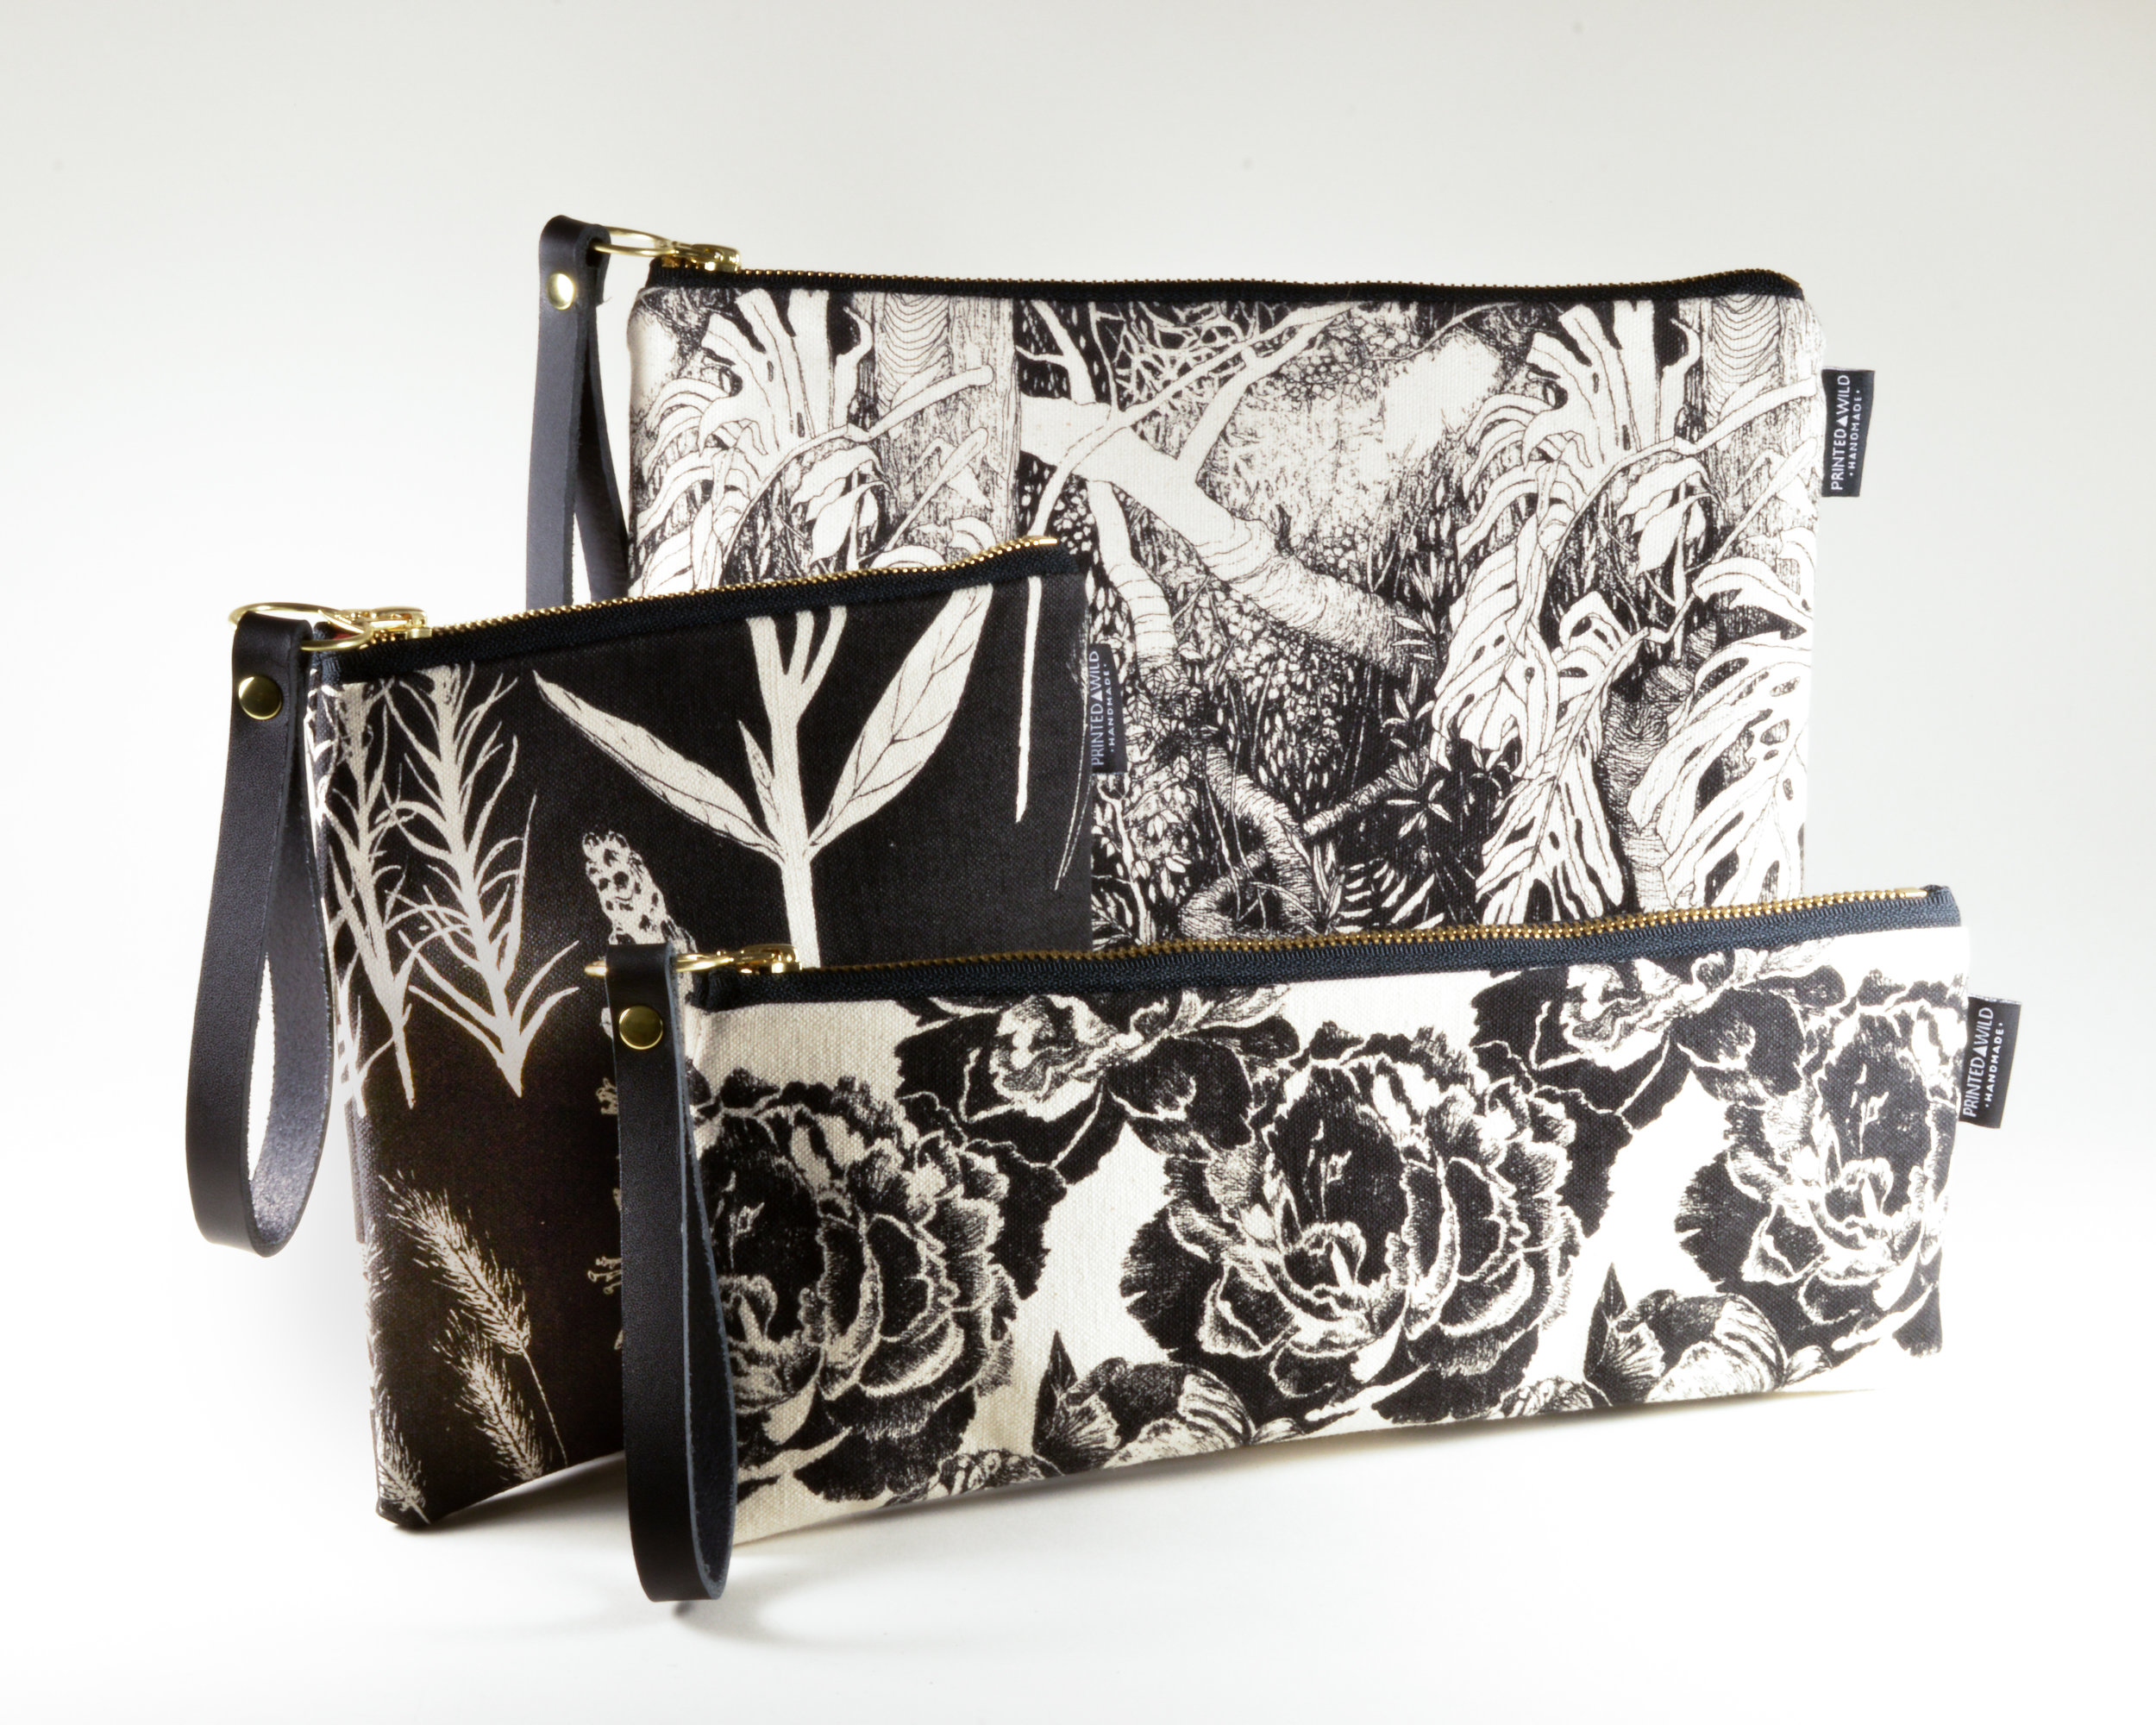 Handcrafted accessories and modern essentials inspired by nature -